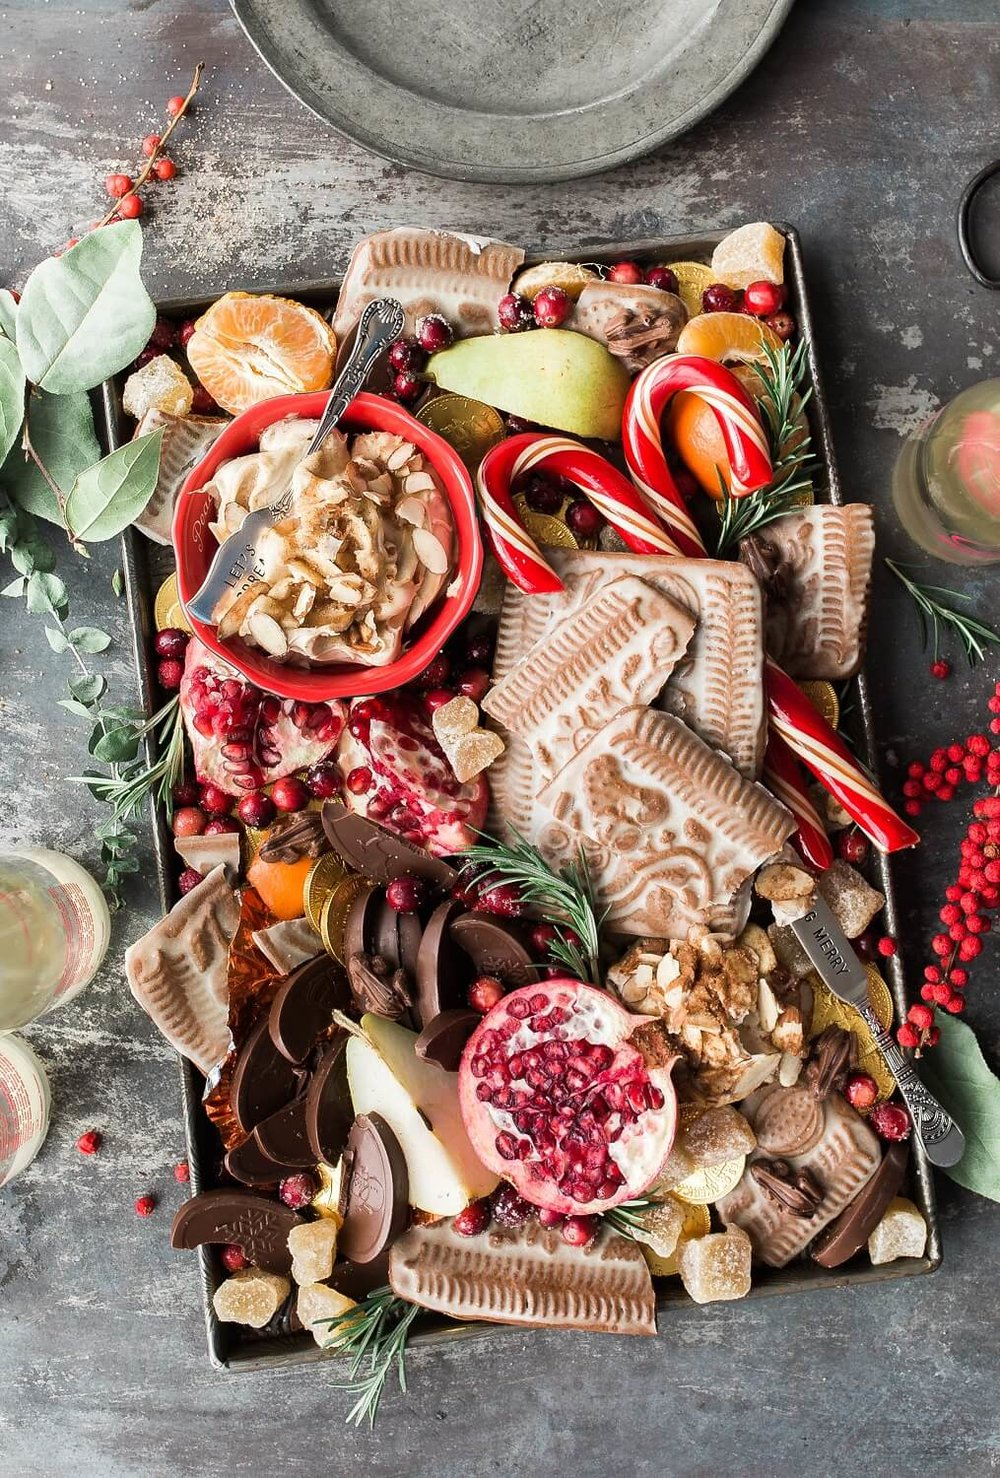 Christmas snacks are everywhere over the festive season. We already make over 200 food decisions and with the highly tempting additional Christmas snacks around it can be hard to stay on track especially if you're trying to lose weight. This blog gives you 5 weight-loss friendly Christmas snacks to try this yuletide. midlifemenu.com/blog/christmas-snacks